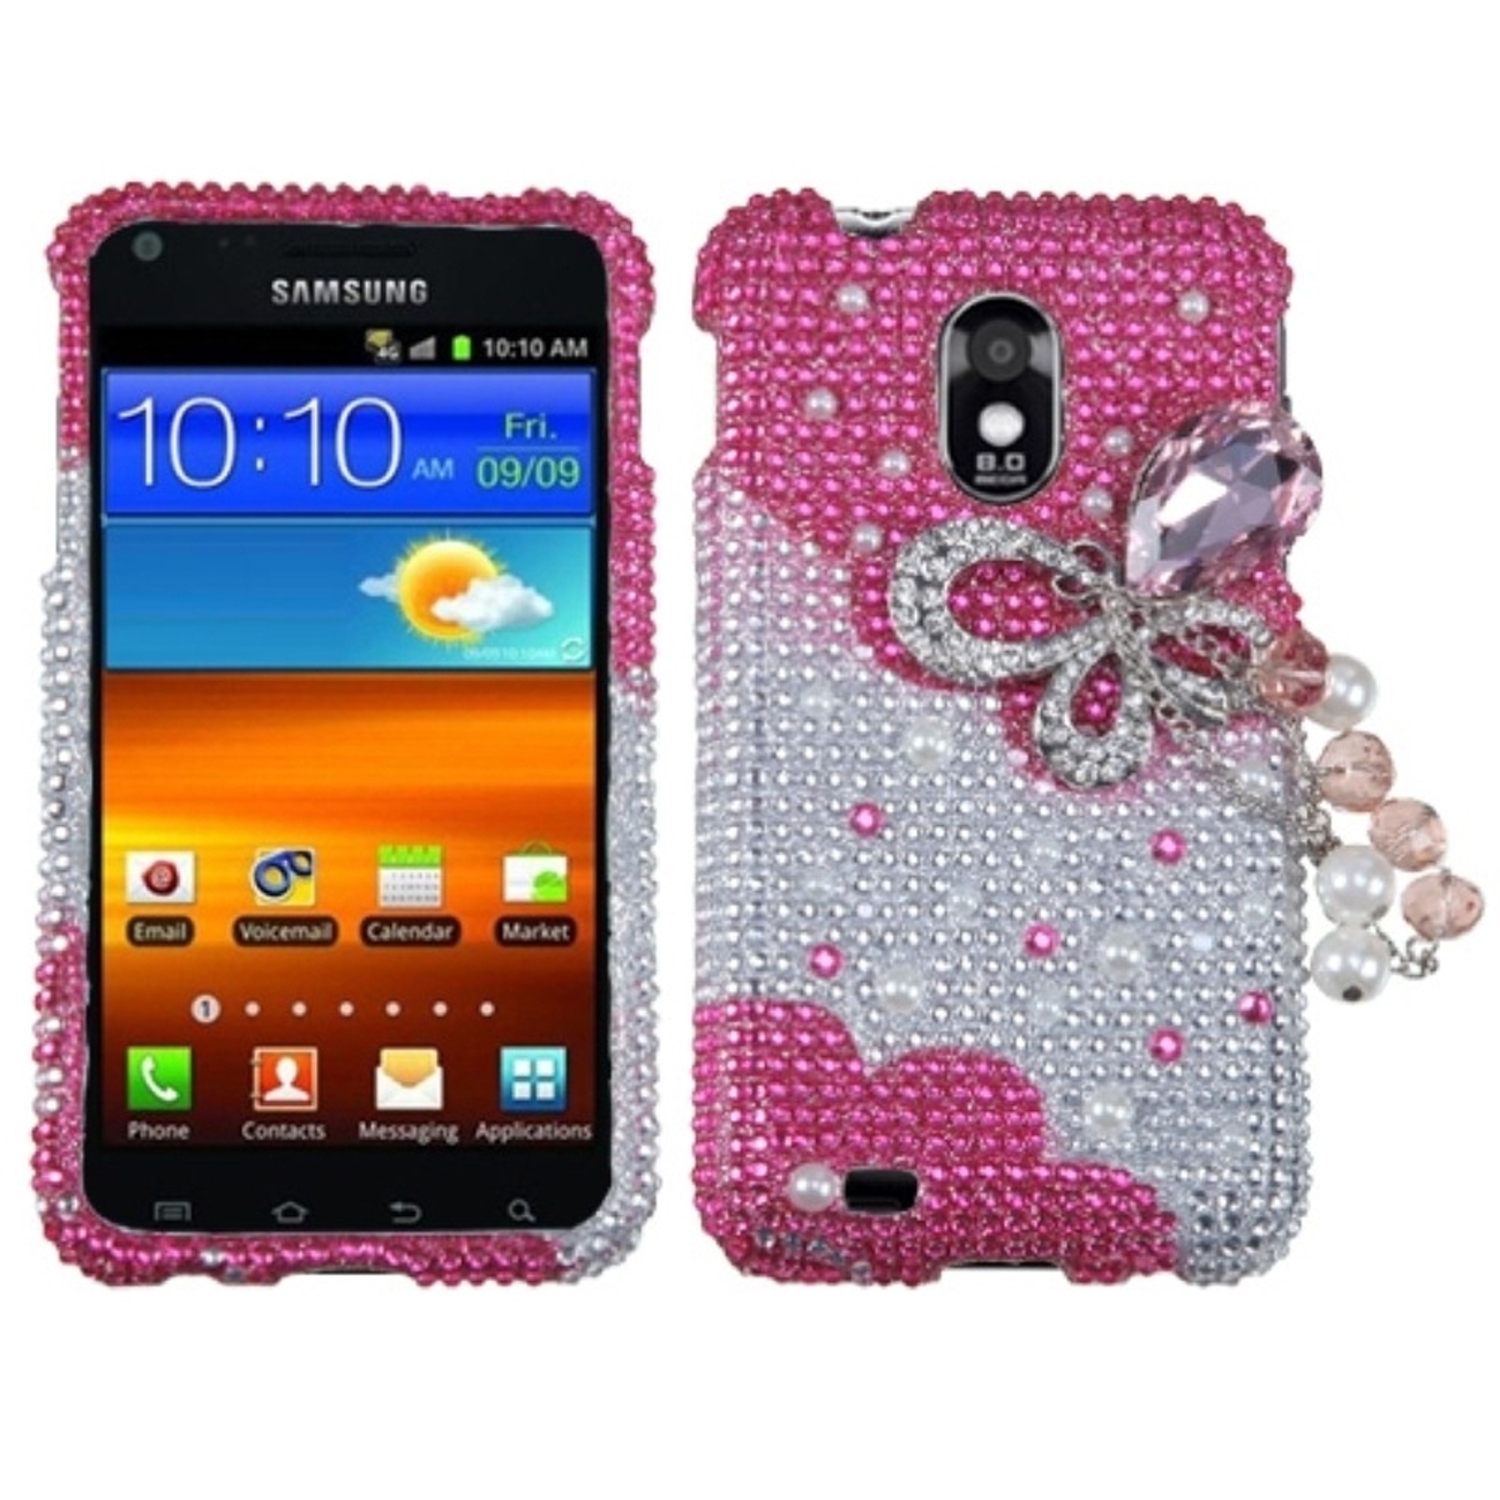 Insten Pink Butterfly Chain 3D Diamante Case for SAMSUNG: D710 (Epic 4G Touch), R760 (Galaxy S II), Galaxy S II 4G